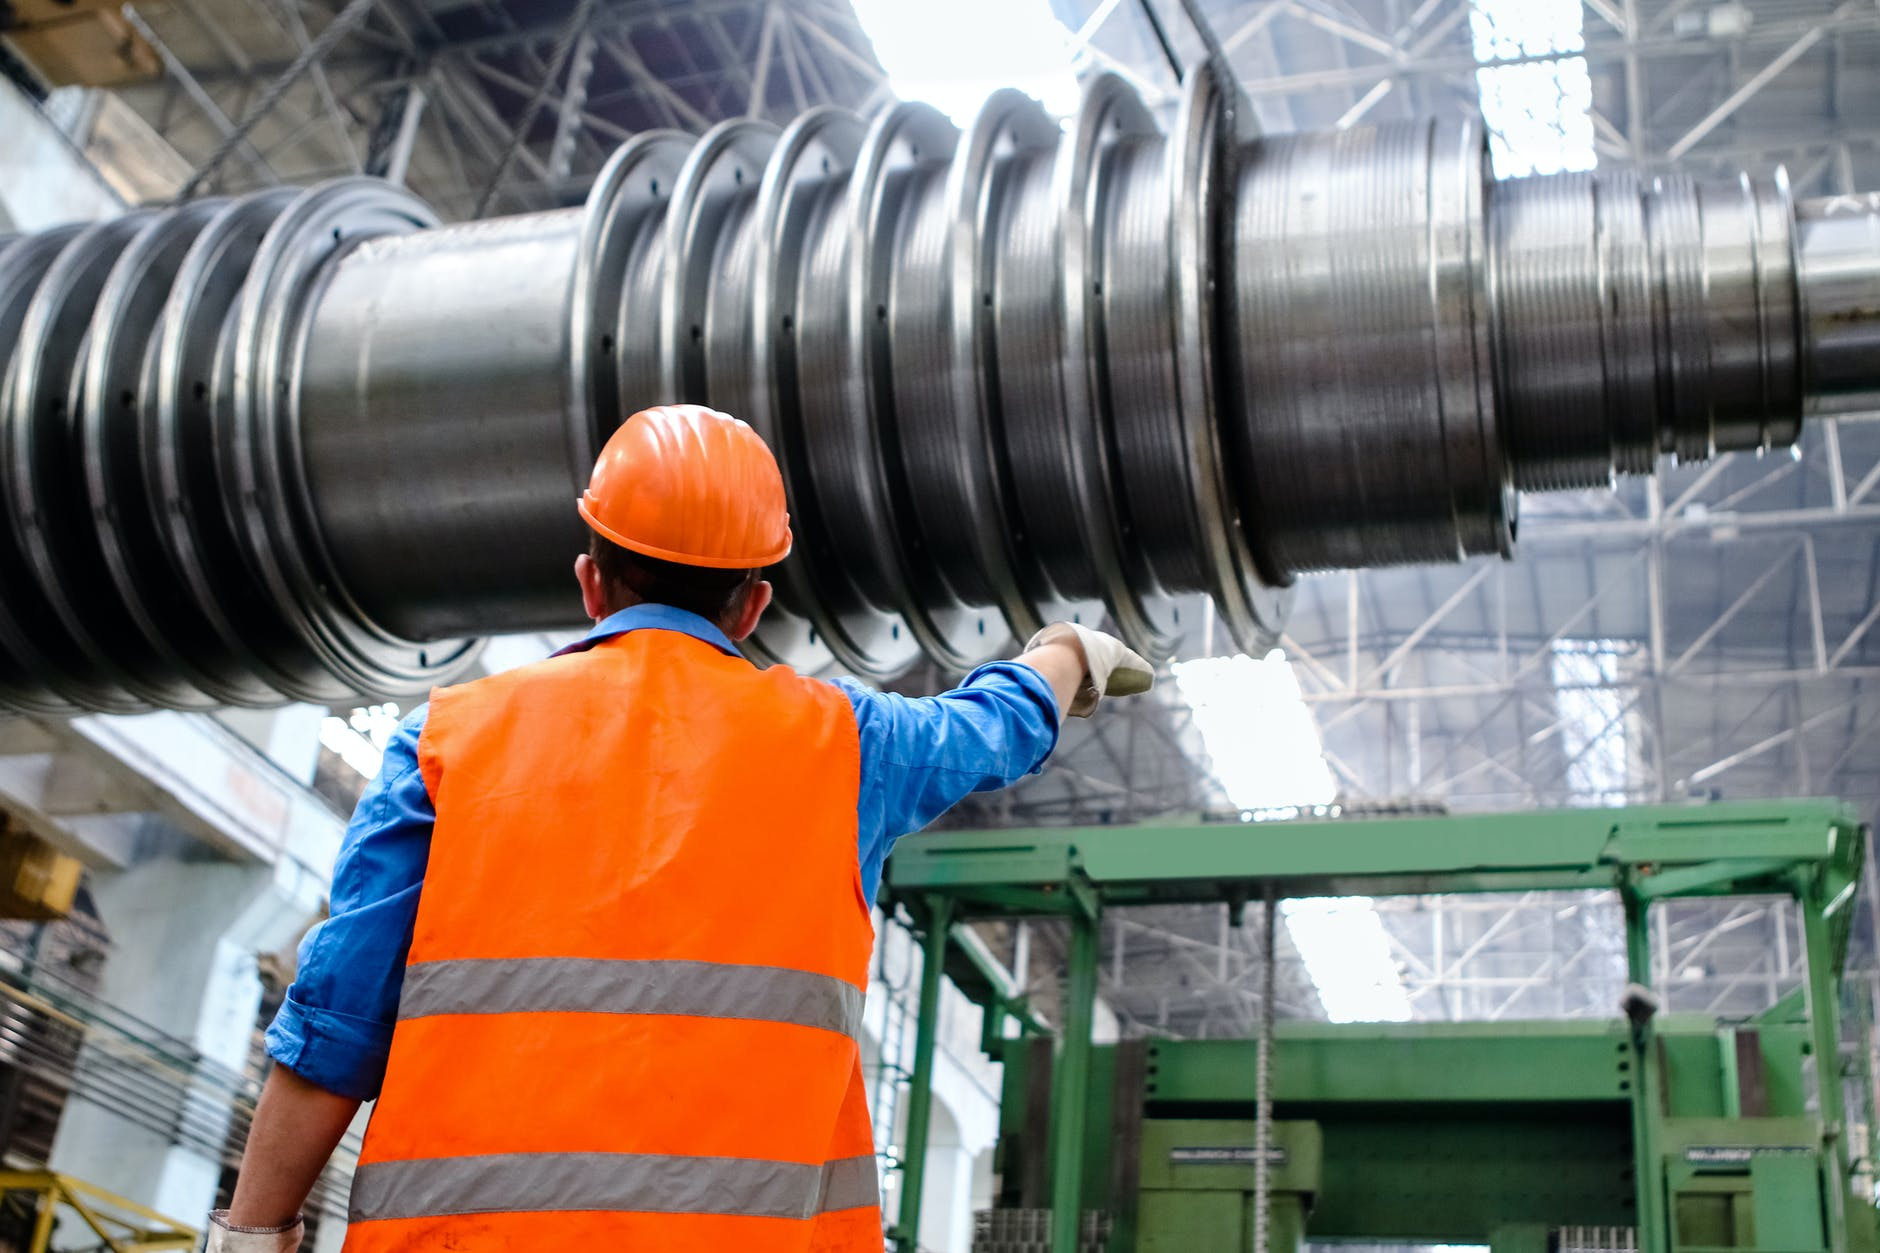 Nippon Steel Files a Patent Infringement Suit Again Toyota and Baoshan